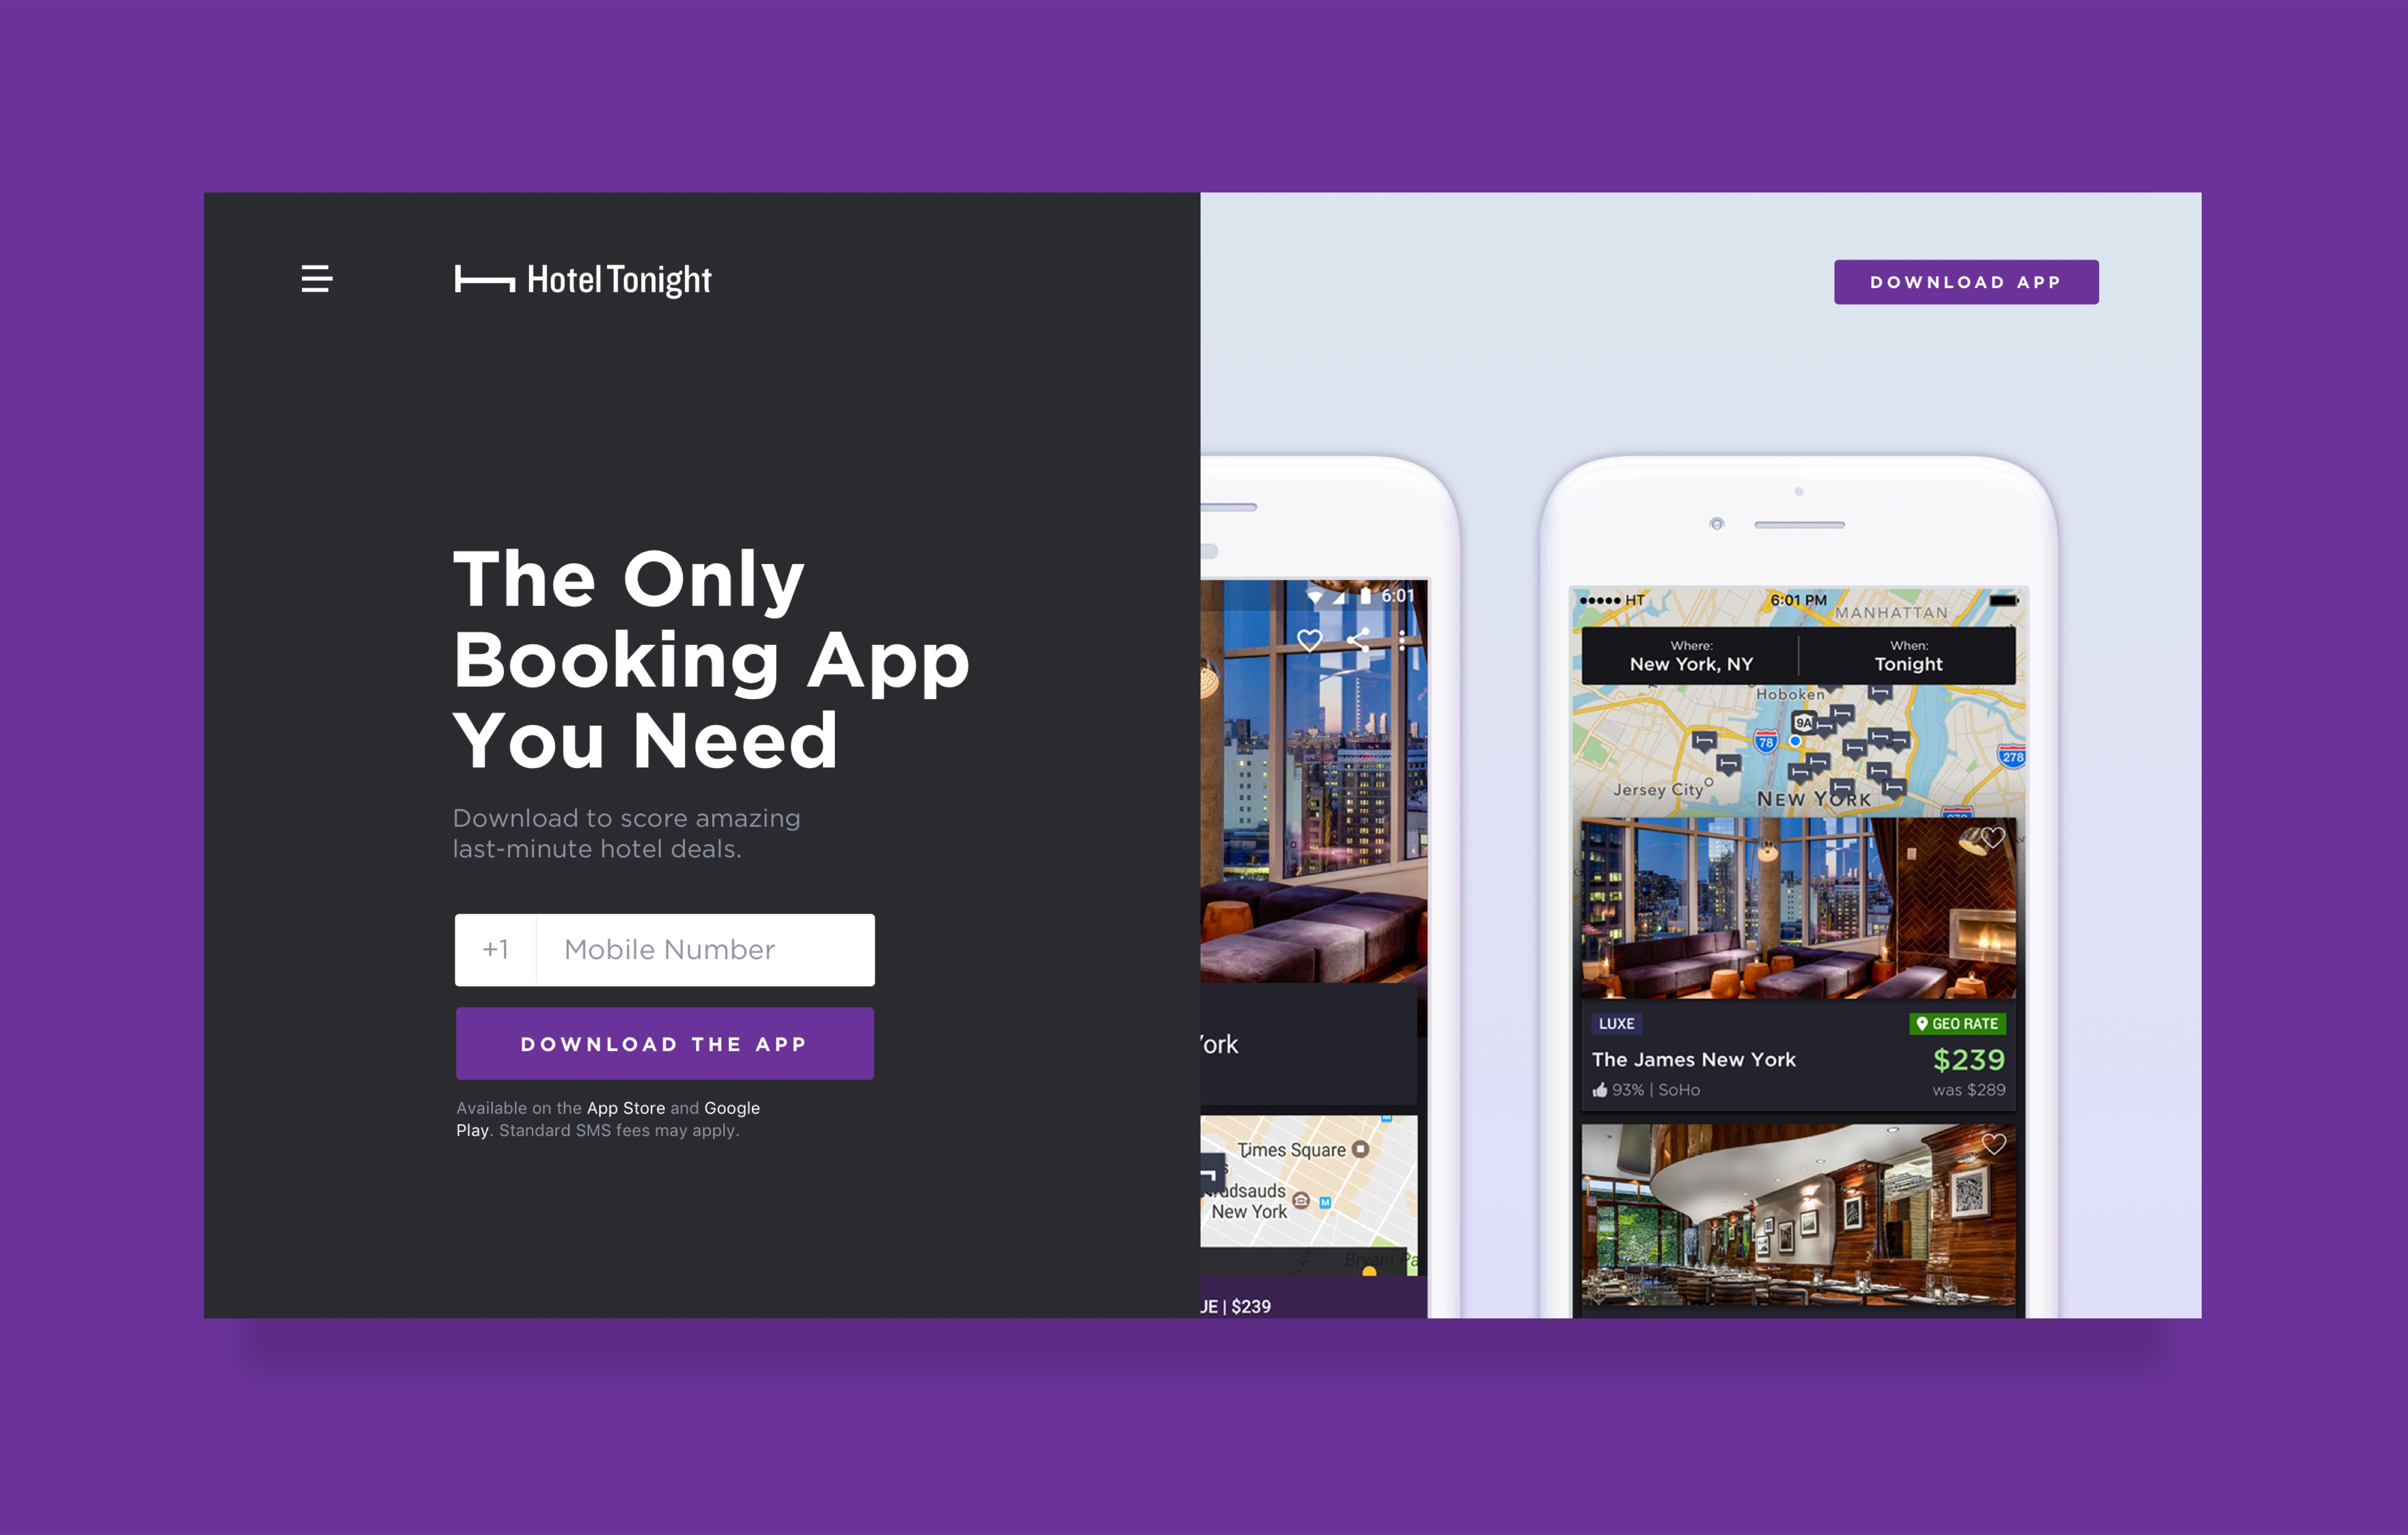 Purple-themed landing page for a hotel app download